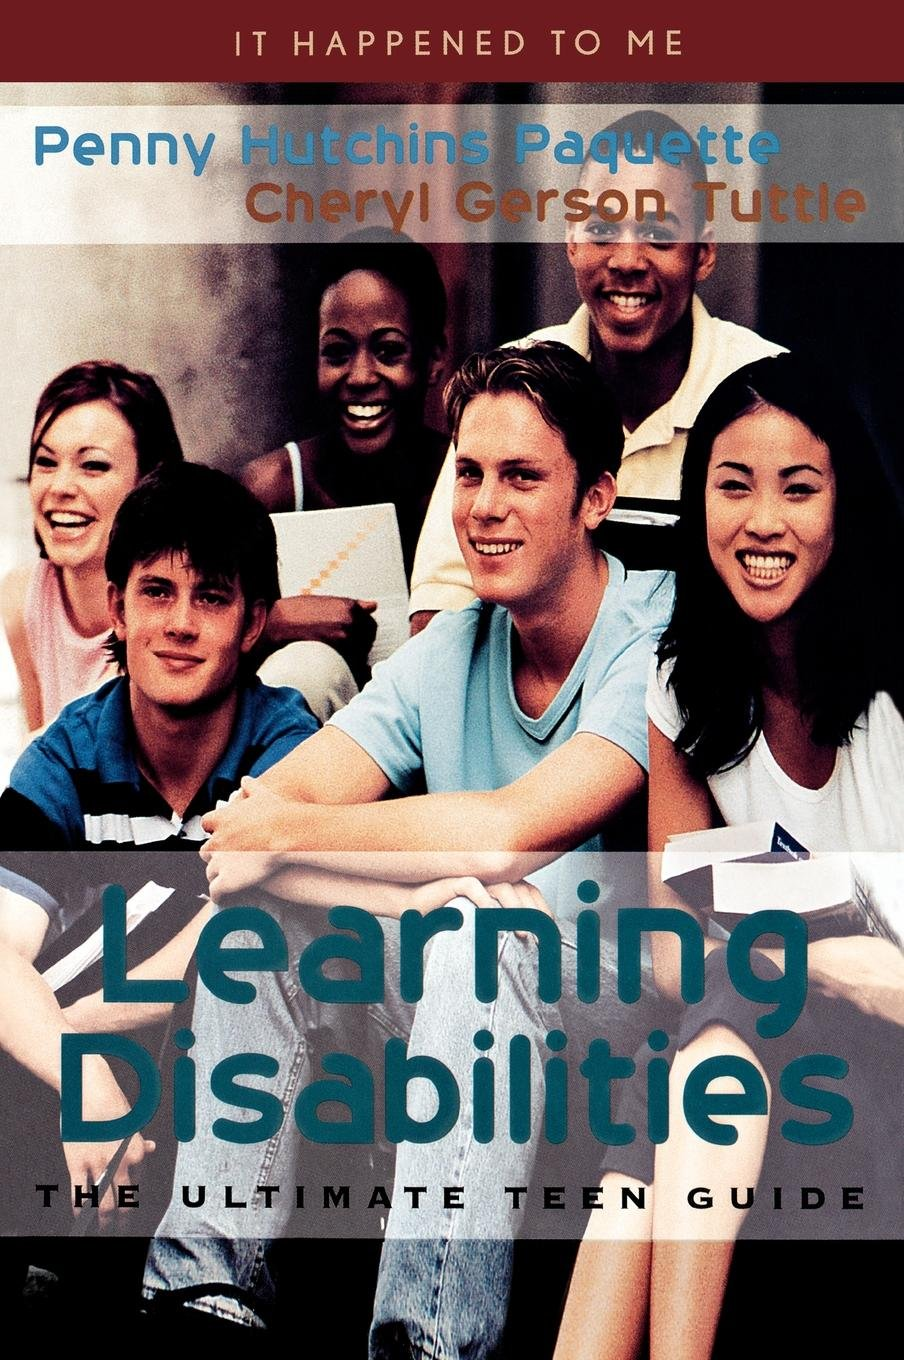 Download Learning Disabilities: The Ultimate Teen Guide (It Happened to Me) ebook